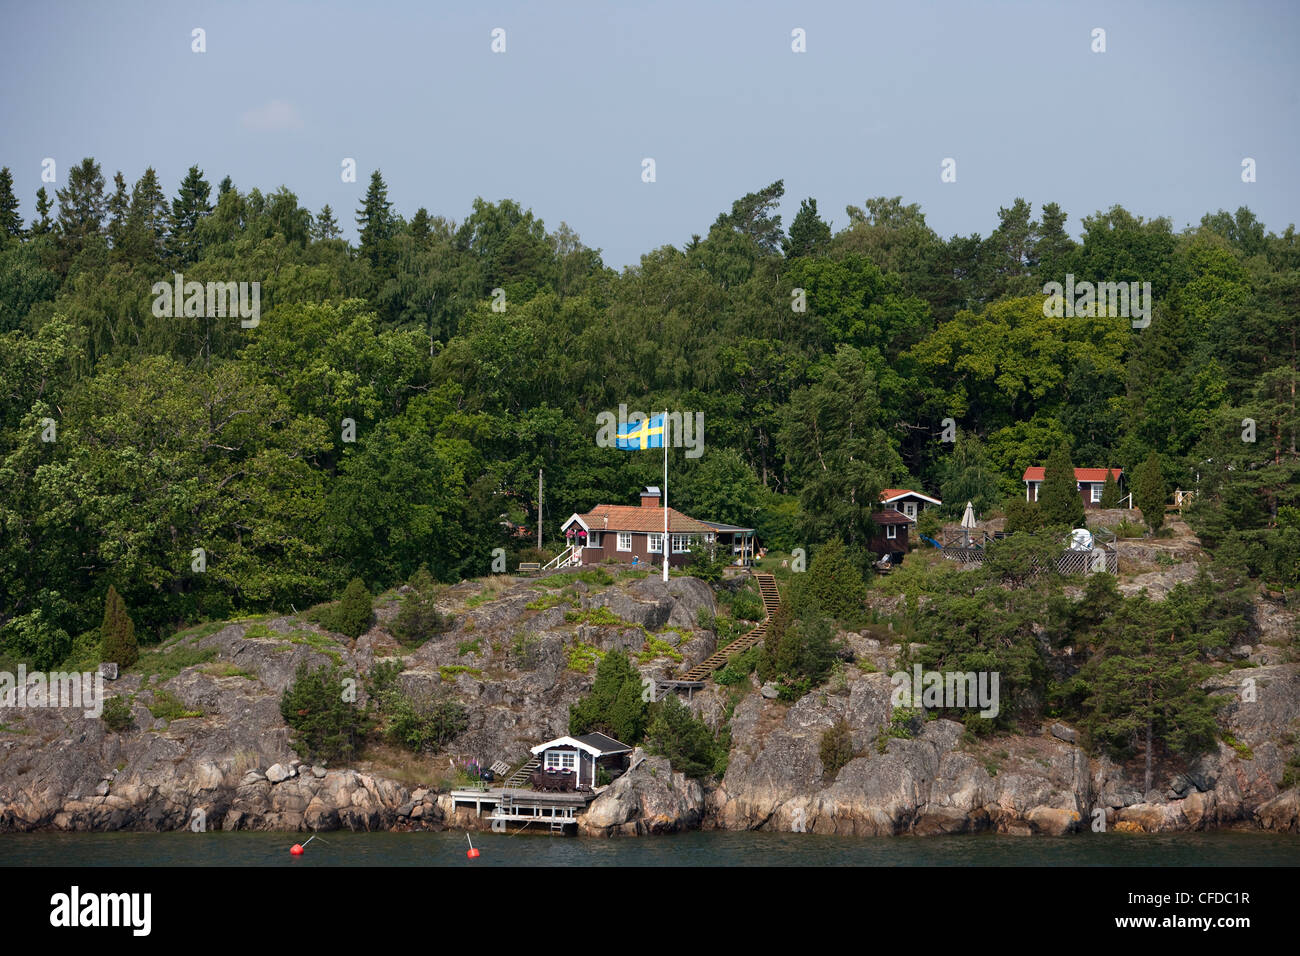 Idyllic house in the Stockholm archipelago, near Stockholm, Sweden - Stock Image